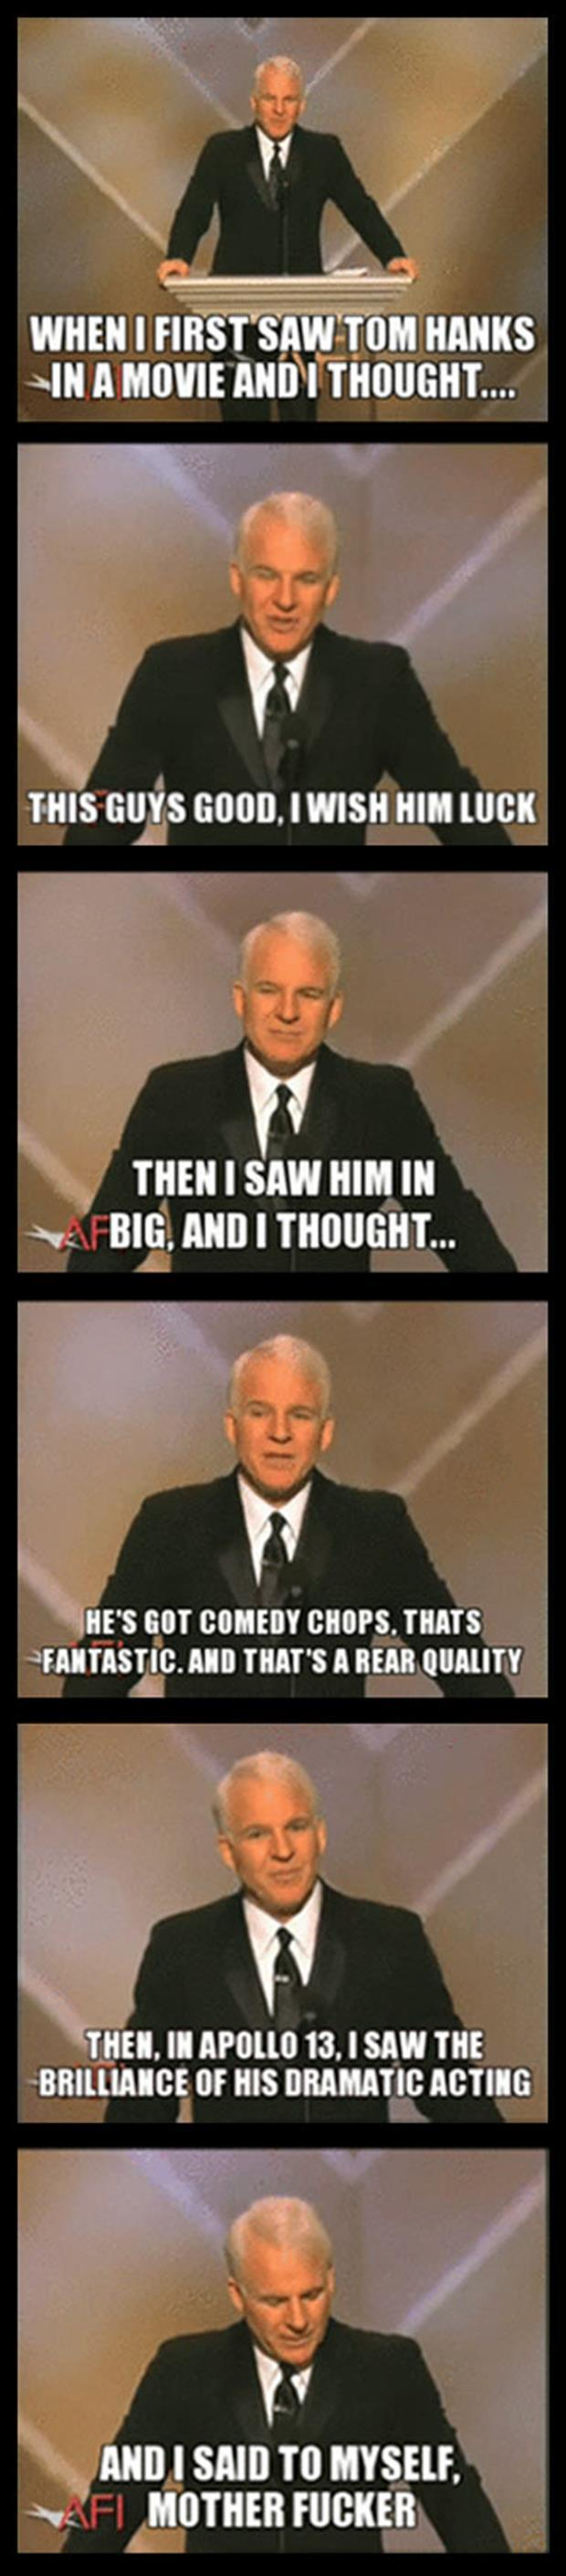 funny steve martin speach